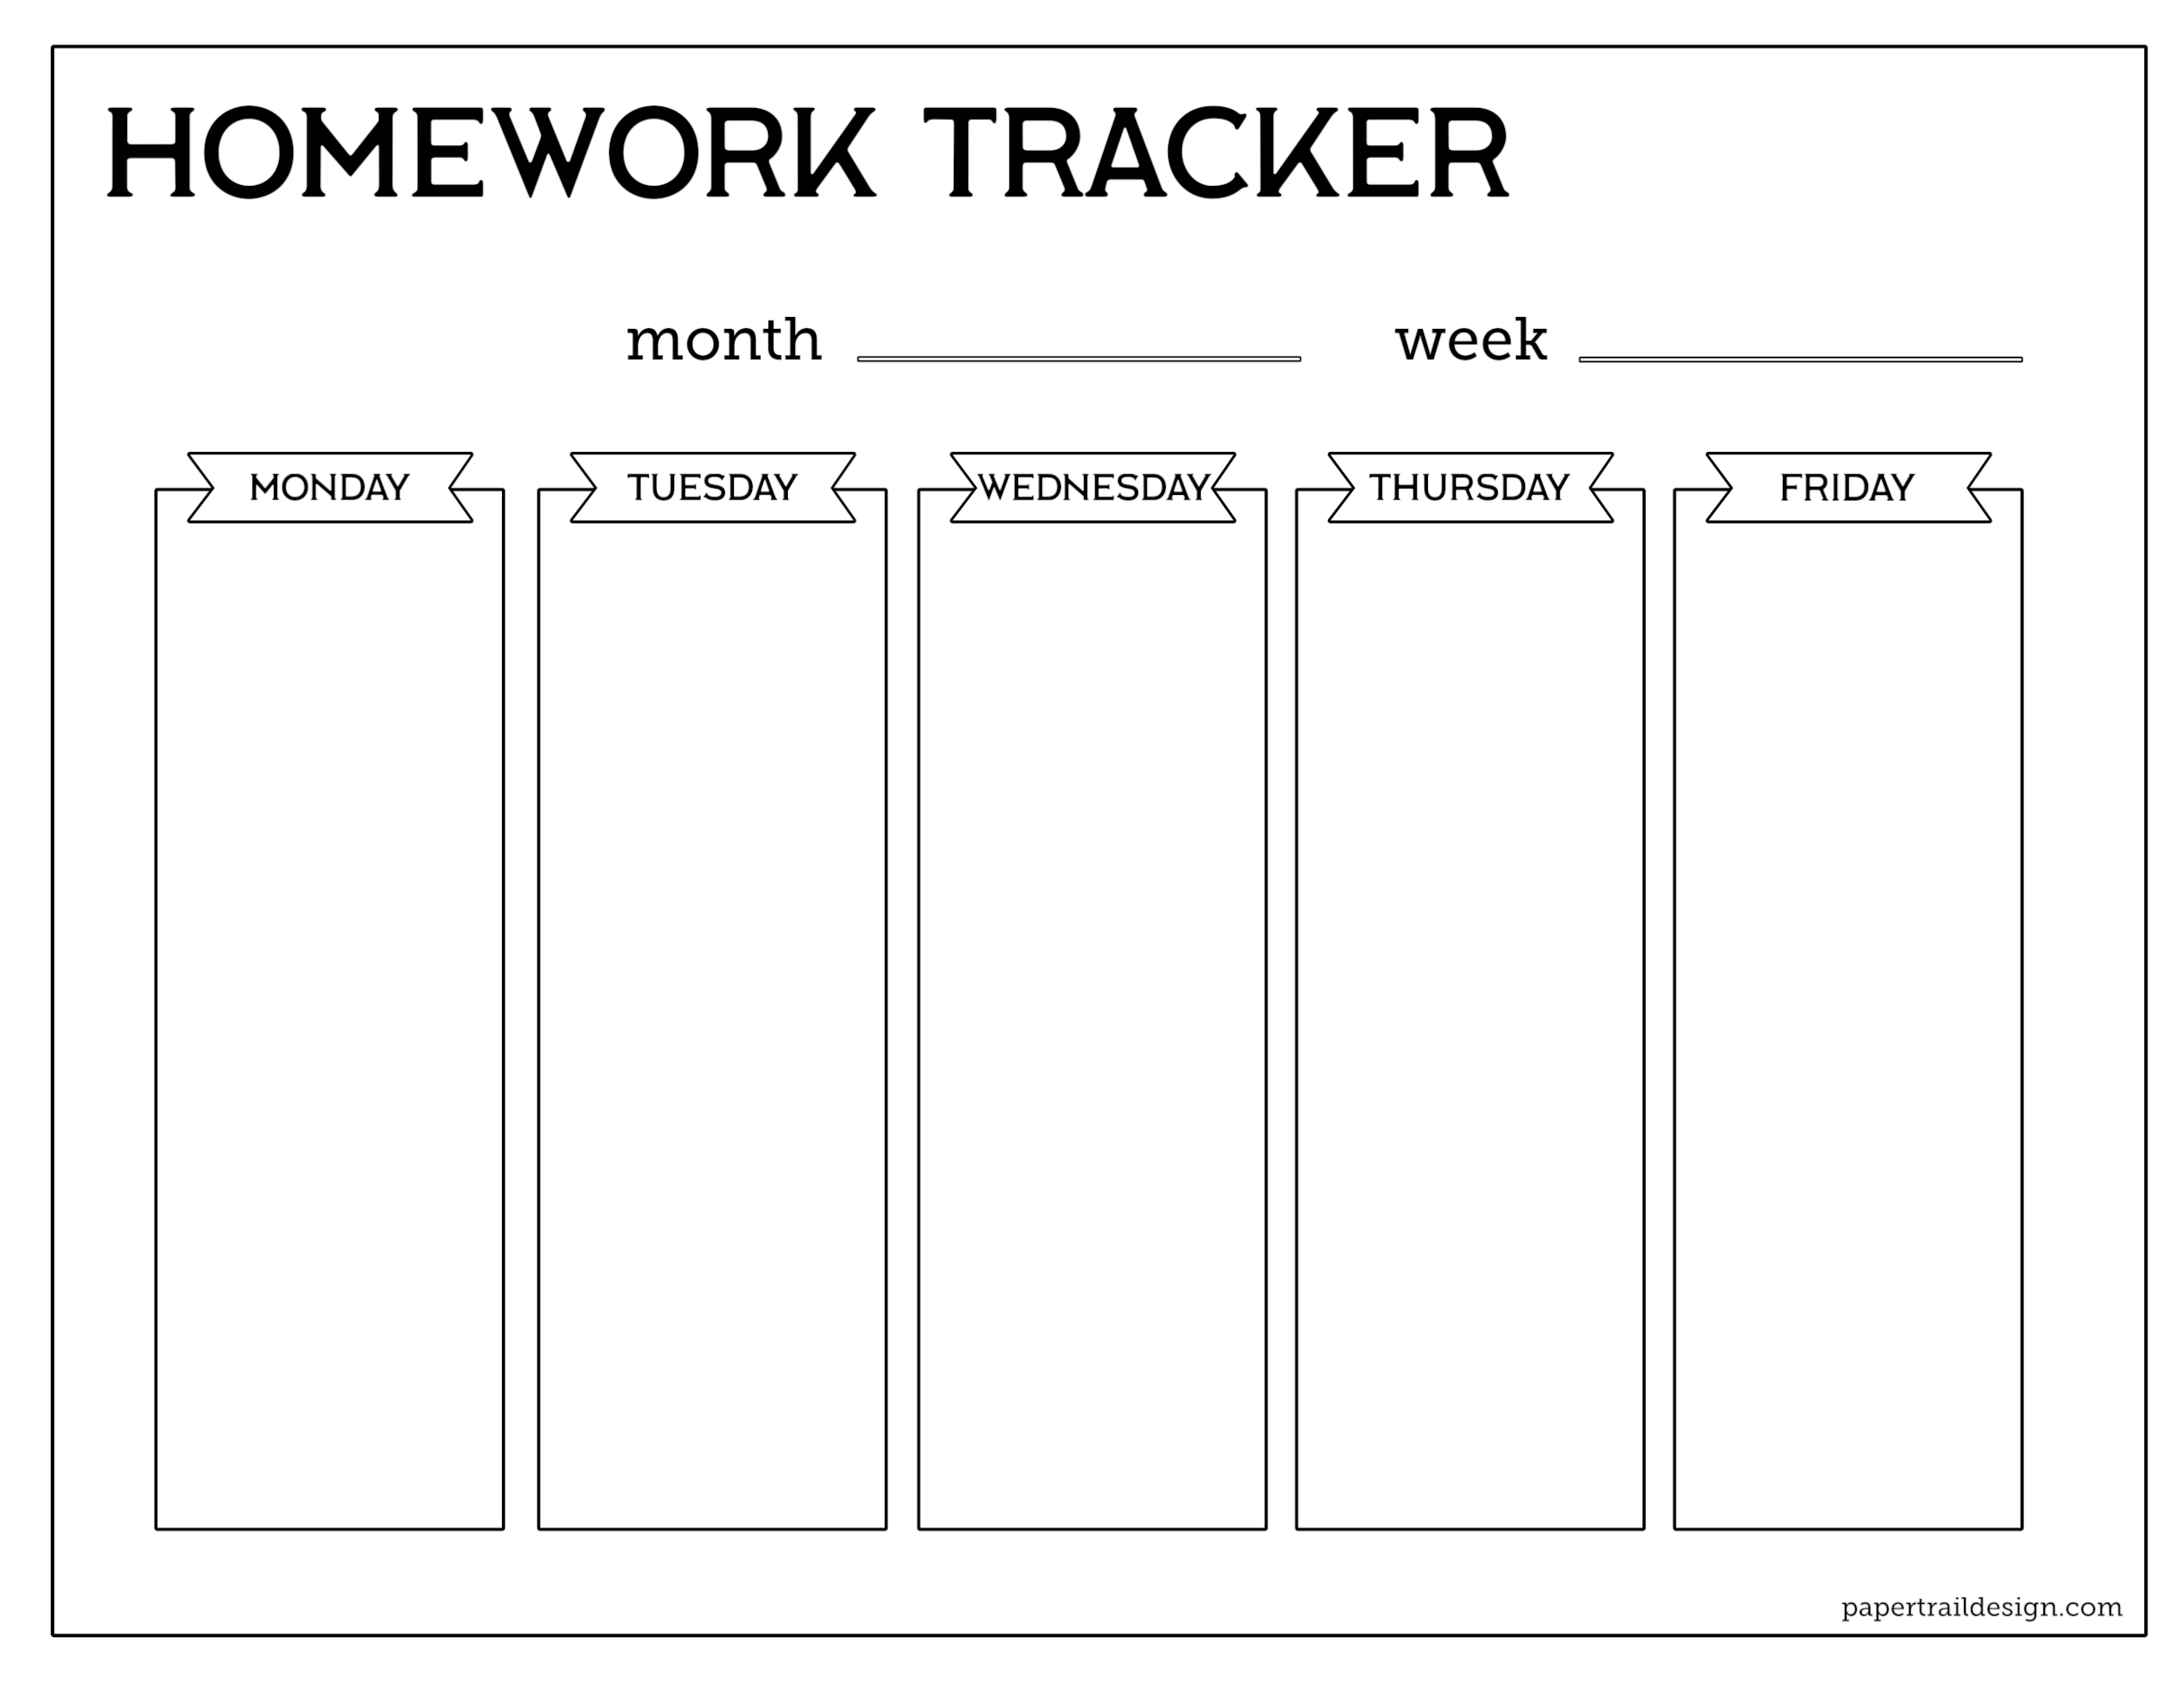 Printable Homework Worksheet